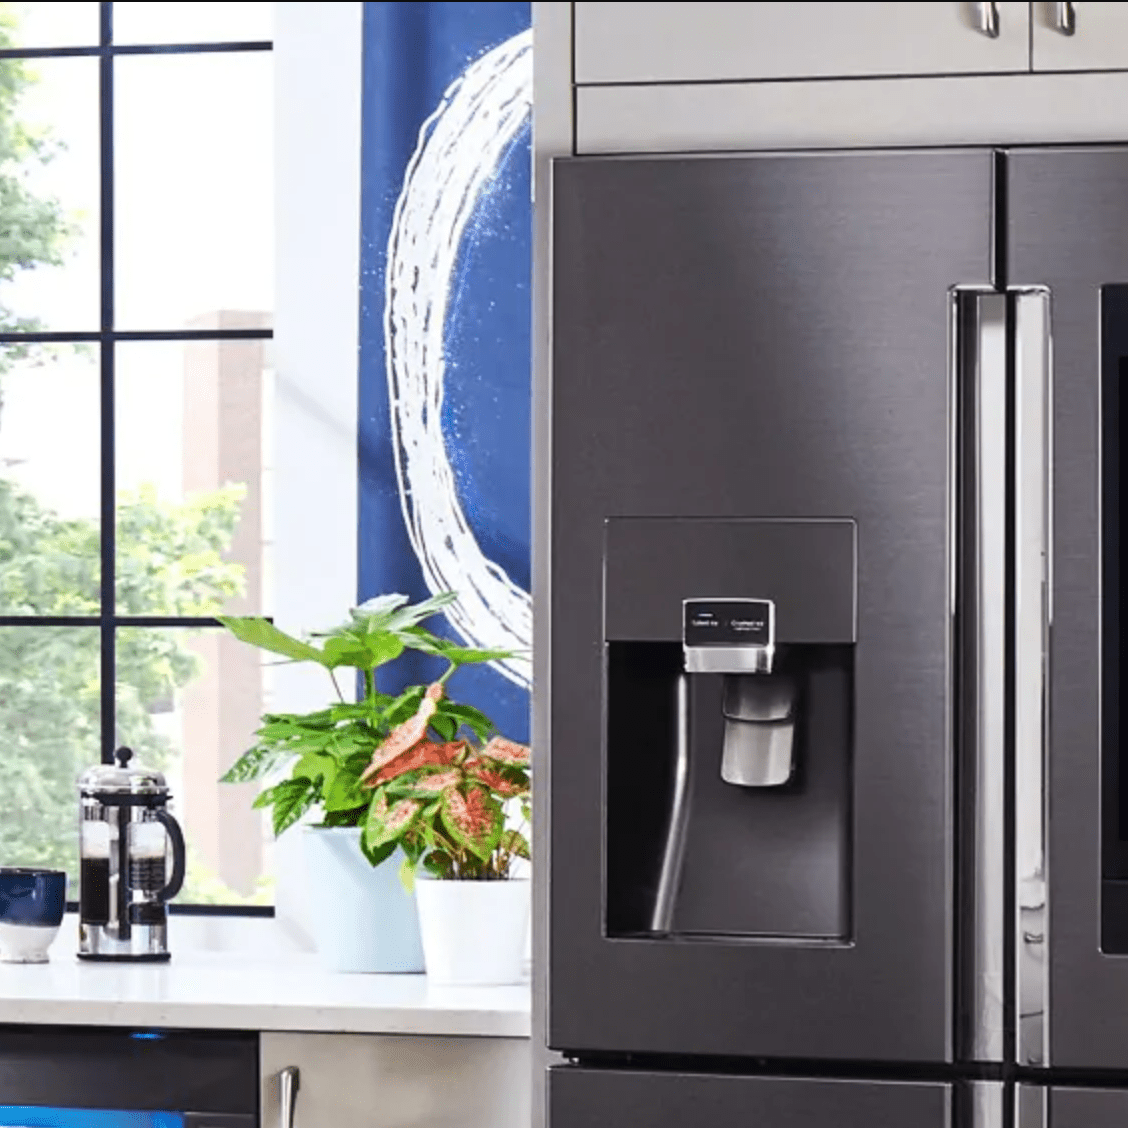 Samsung Family Hub Manages Your Family From the Fridge